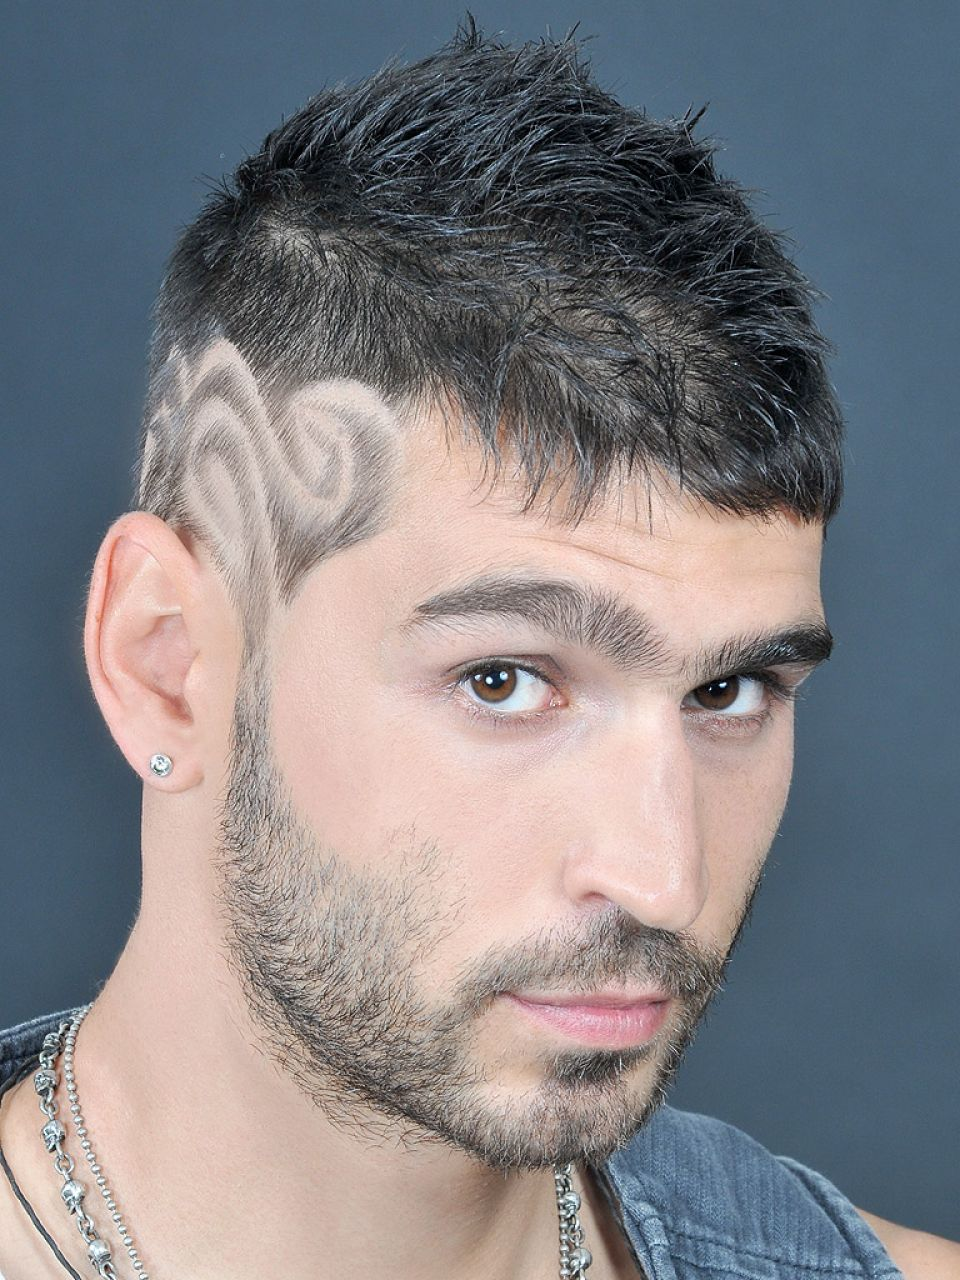 Hair Tattoo Friseur Com